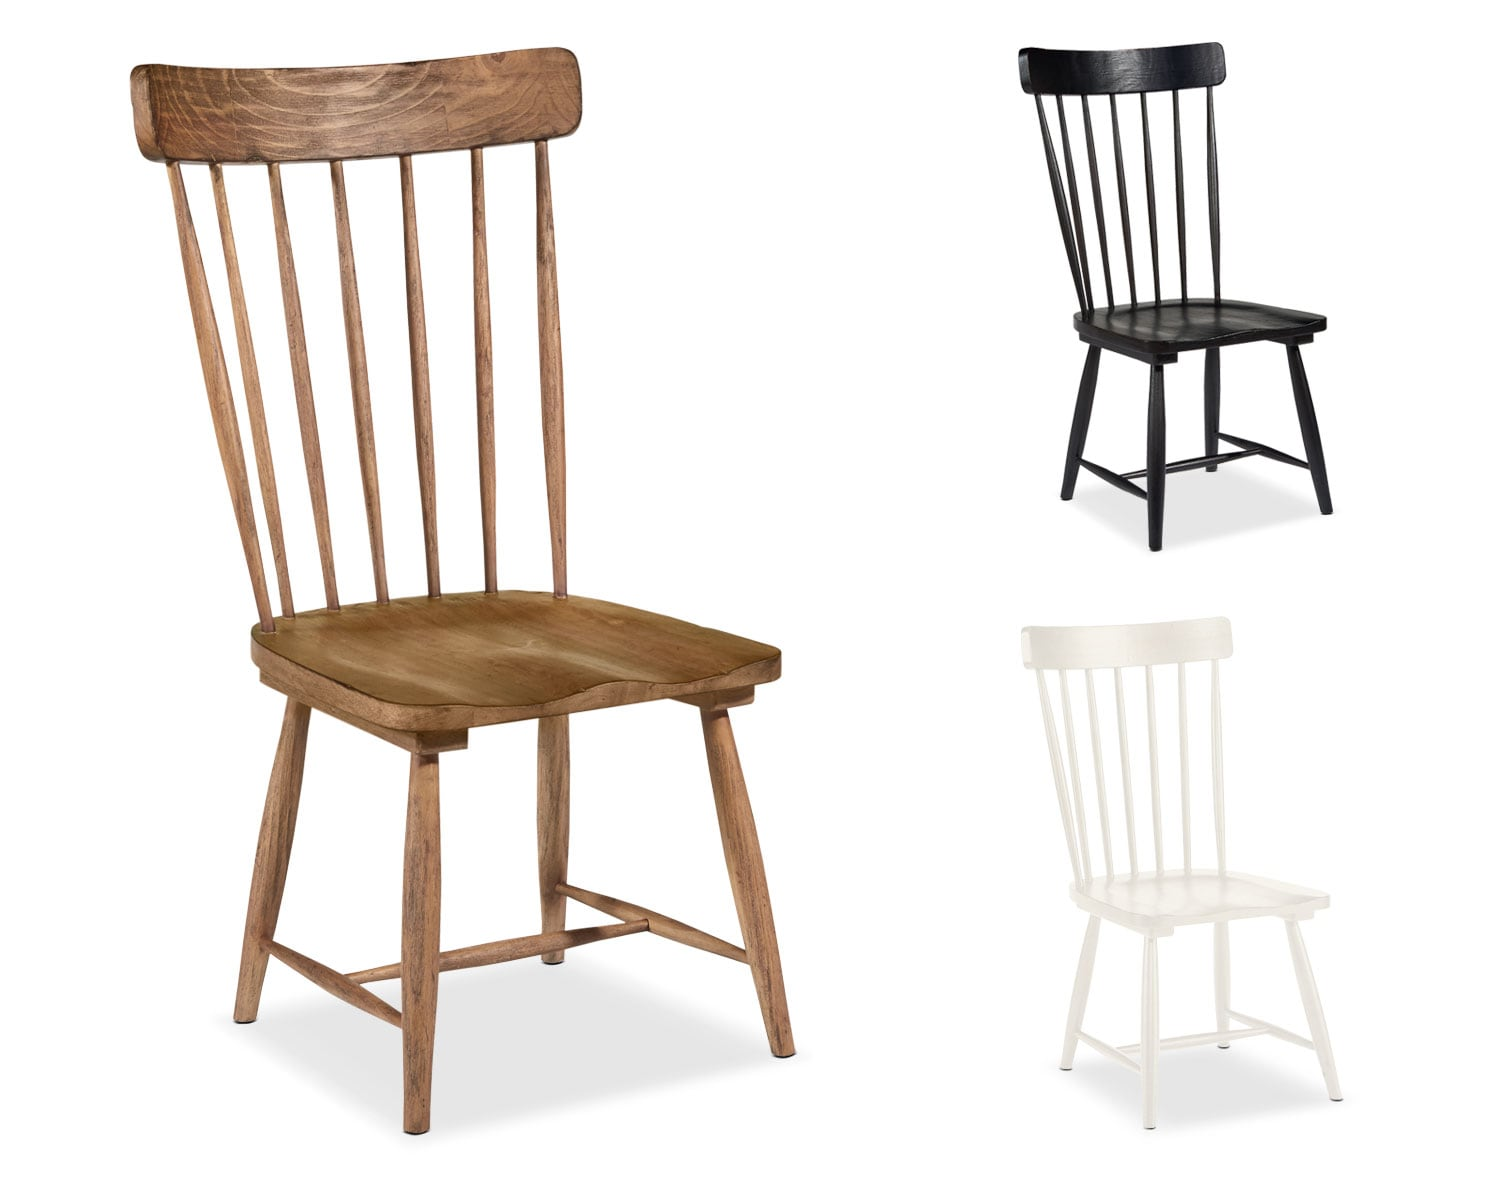 The Farmhouse Spindle Back Side Chair Collection